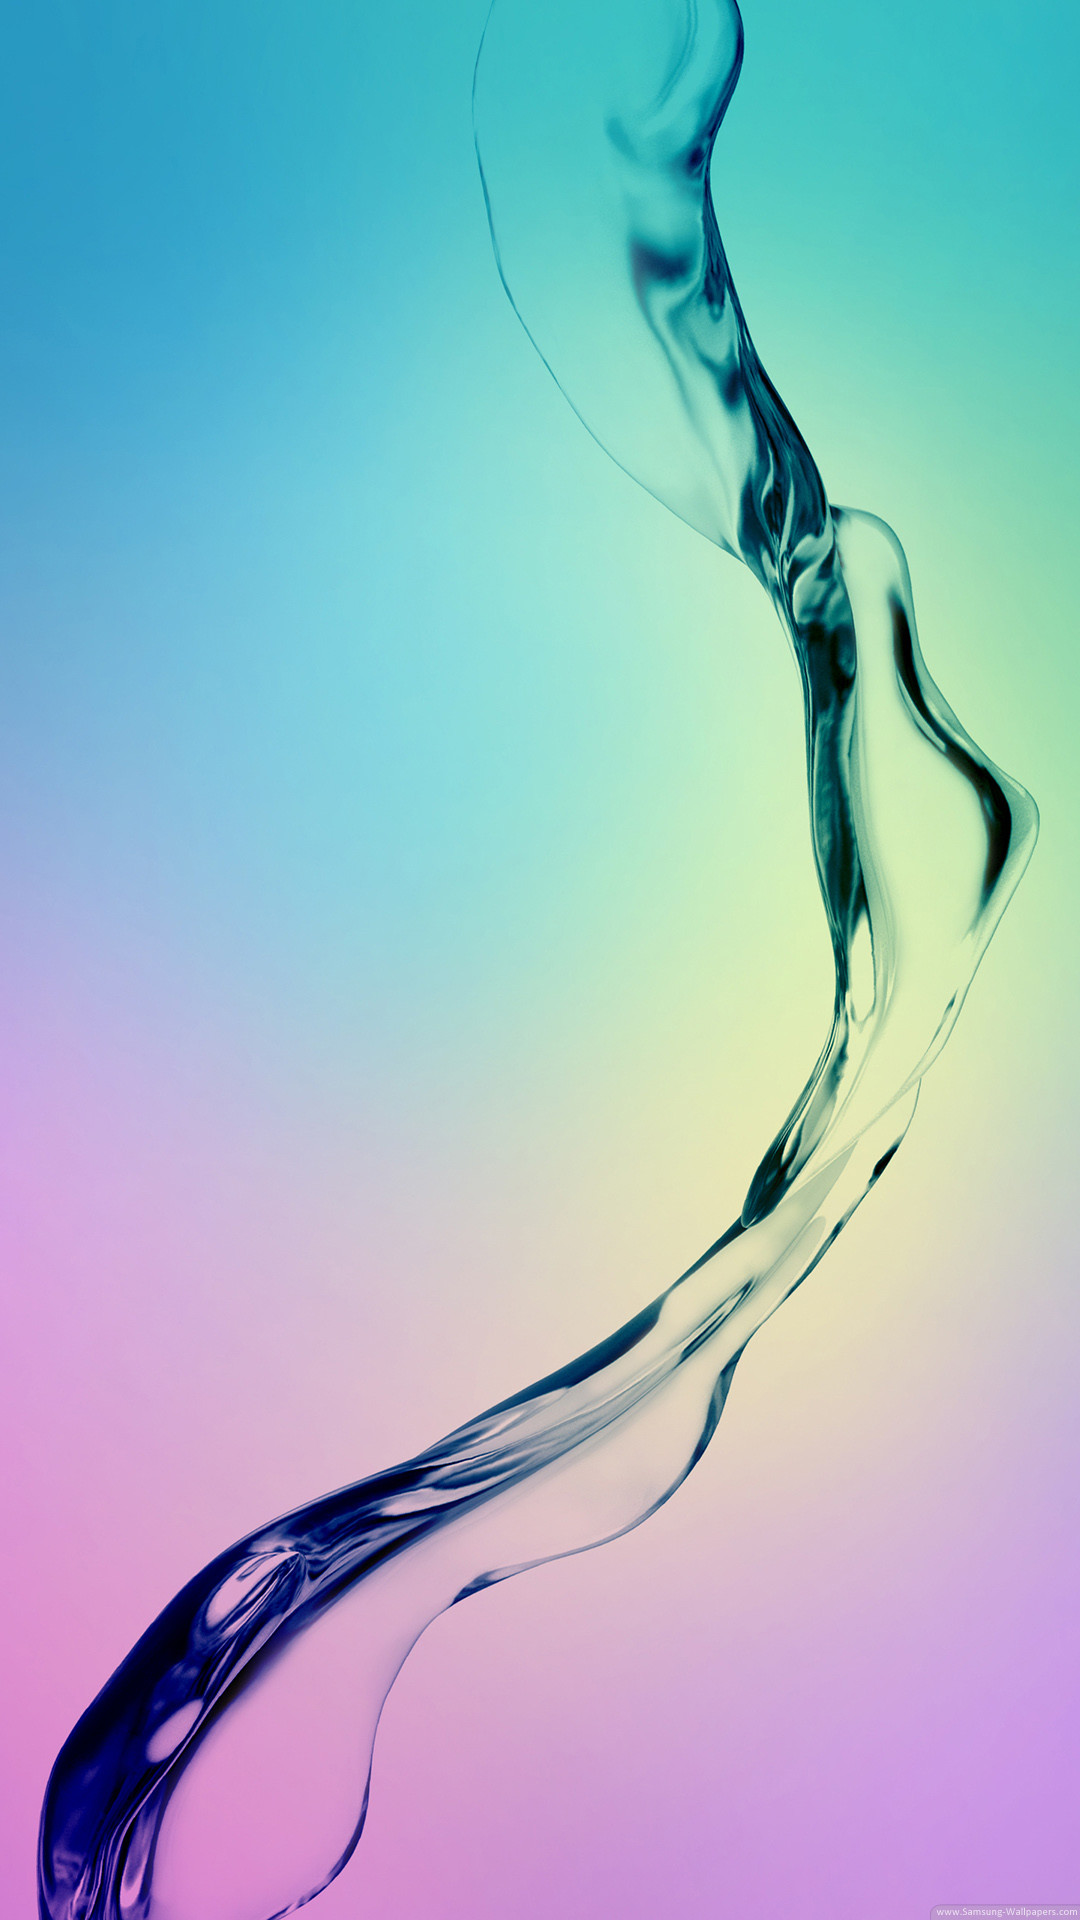 Color Change Stock Samsung Galaxy S6 Wallpapers Hd Samsung S6 Wallpaper Full Hd 1080x1920 Wallpaper Teahub Io